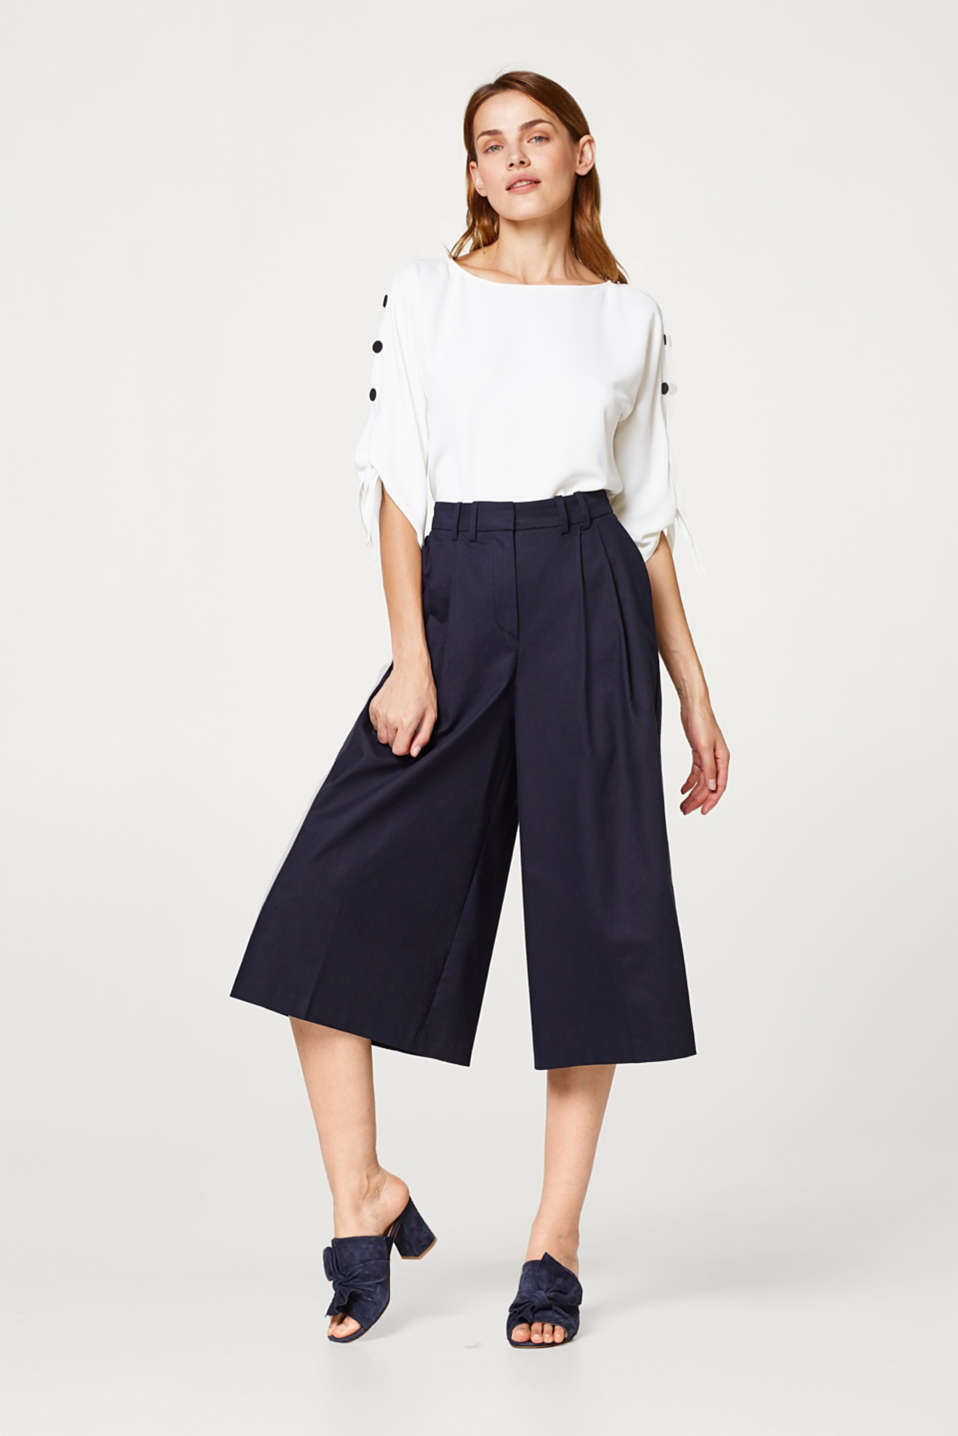 Jupe-culotte à pinces, coton/stretch